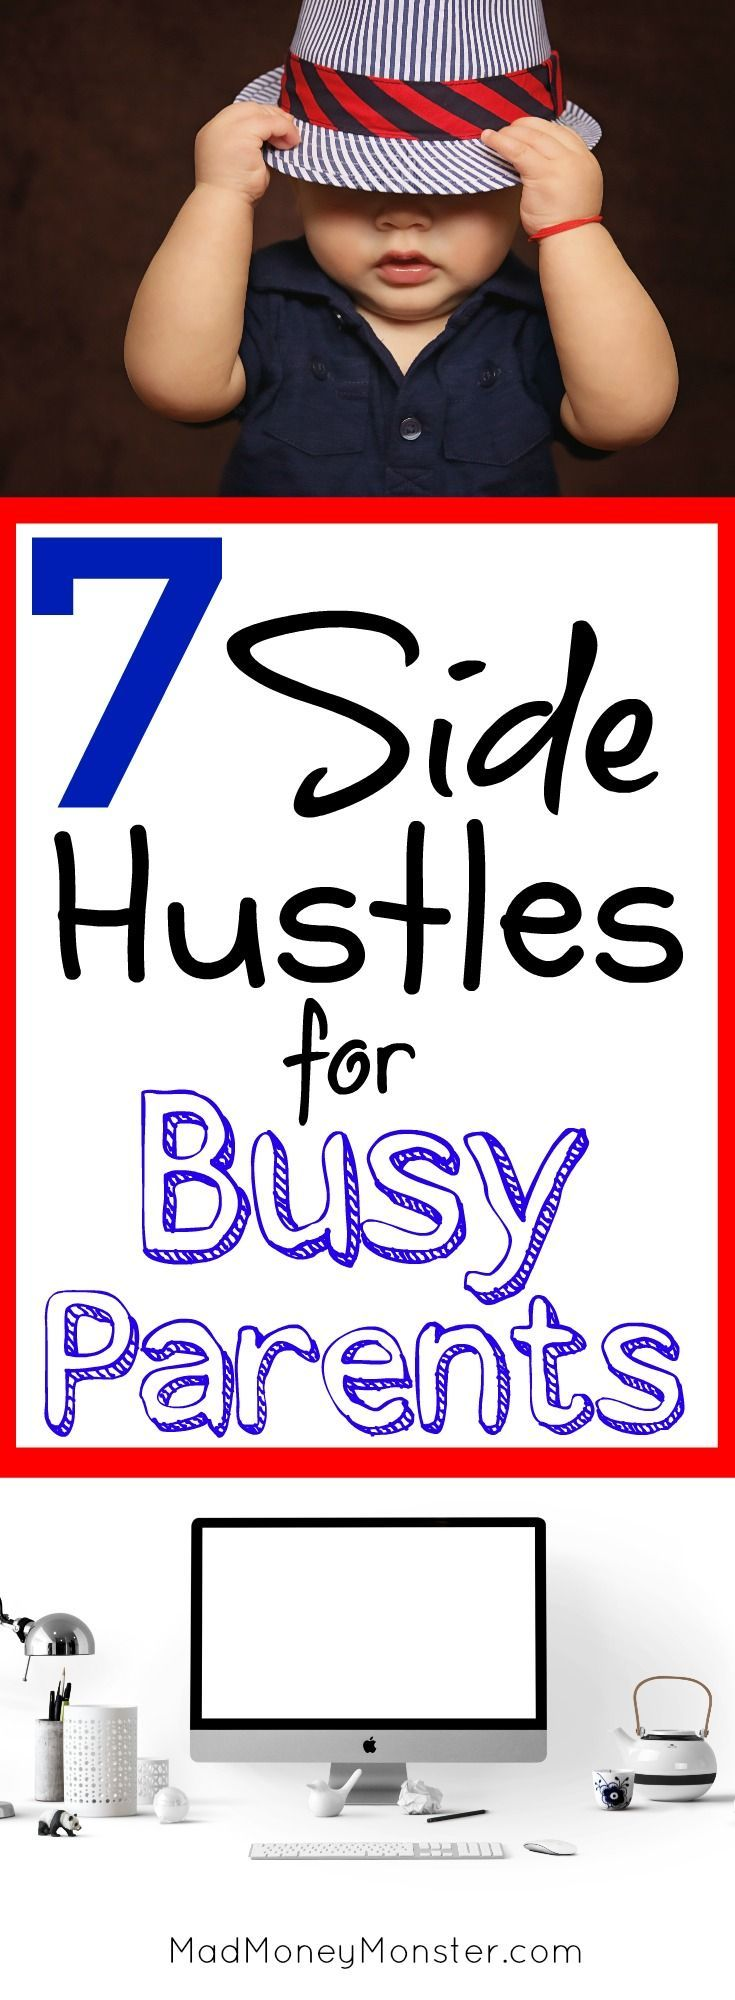 7 Quick Side Hustles Busy Parents Can Start This Weekend Mad Money Monster Make Money Today Mad Money Busy Parents